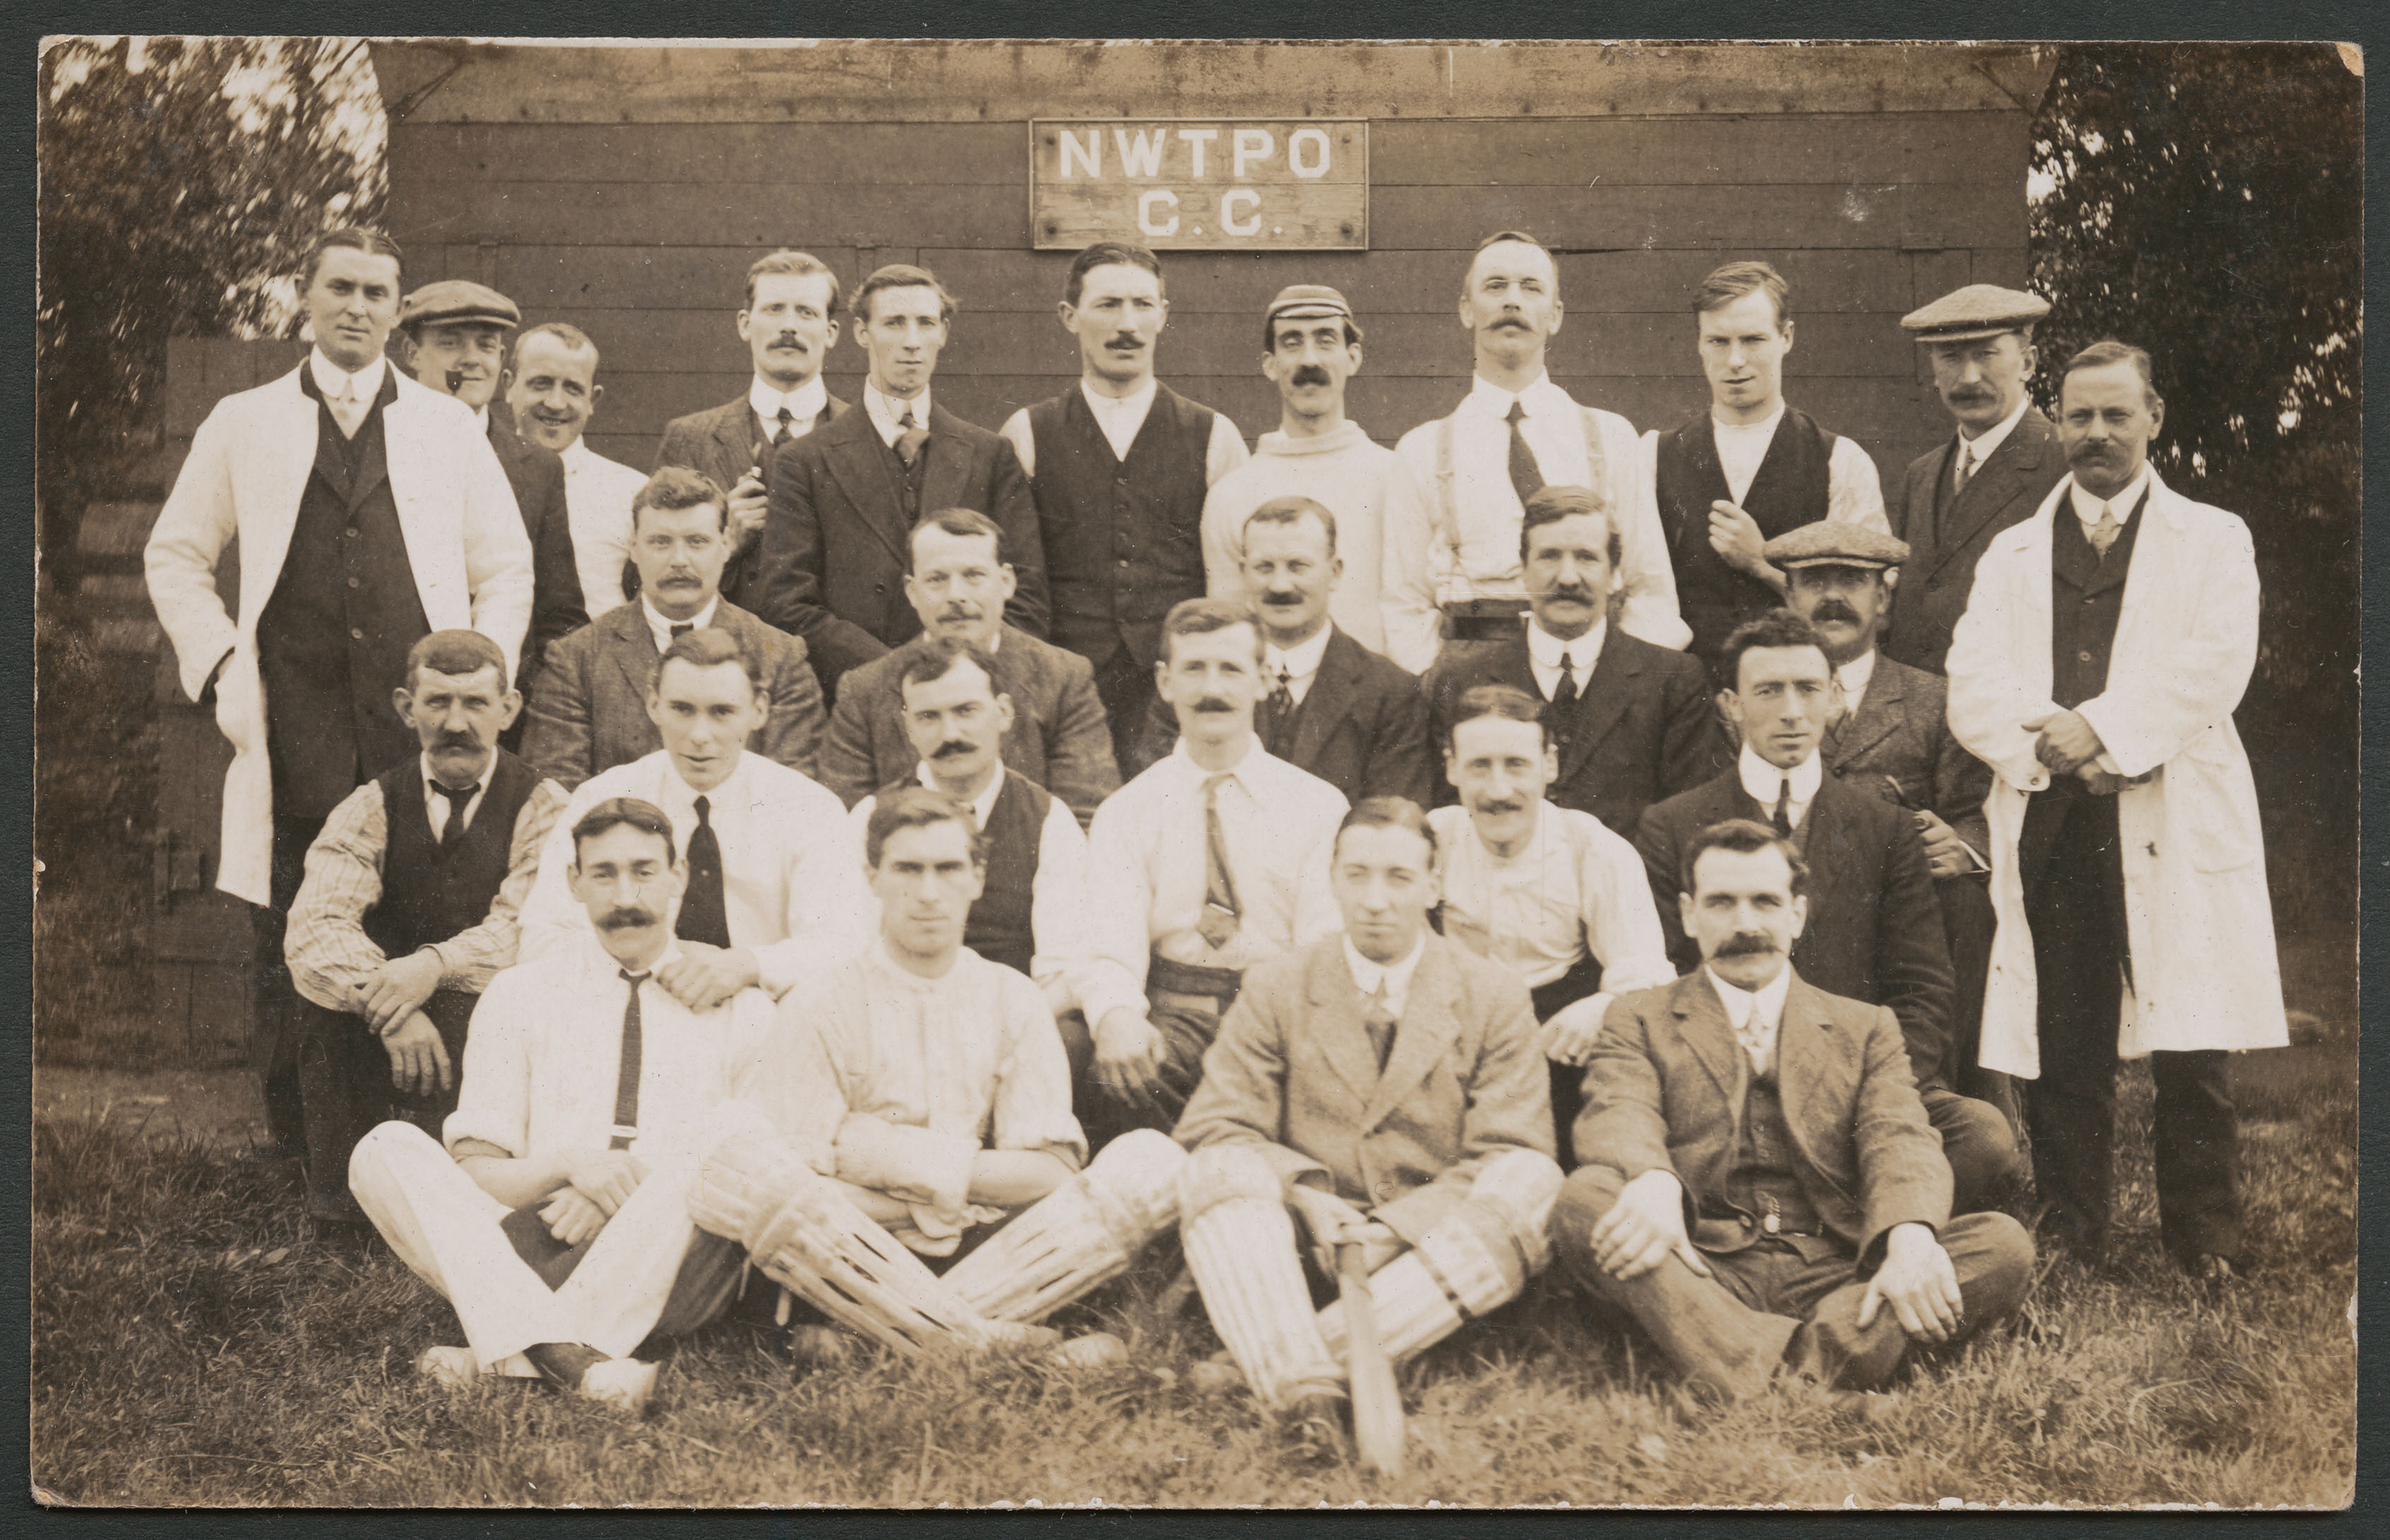 Black and white photograph of a all male Post Office cricket team grouped for a team photograph.